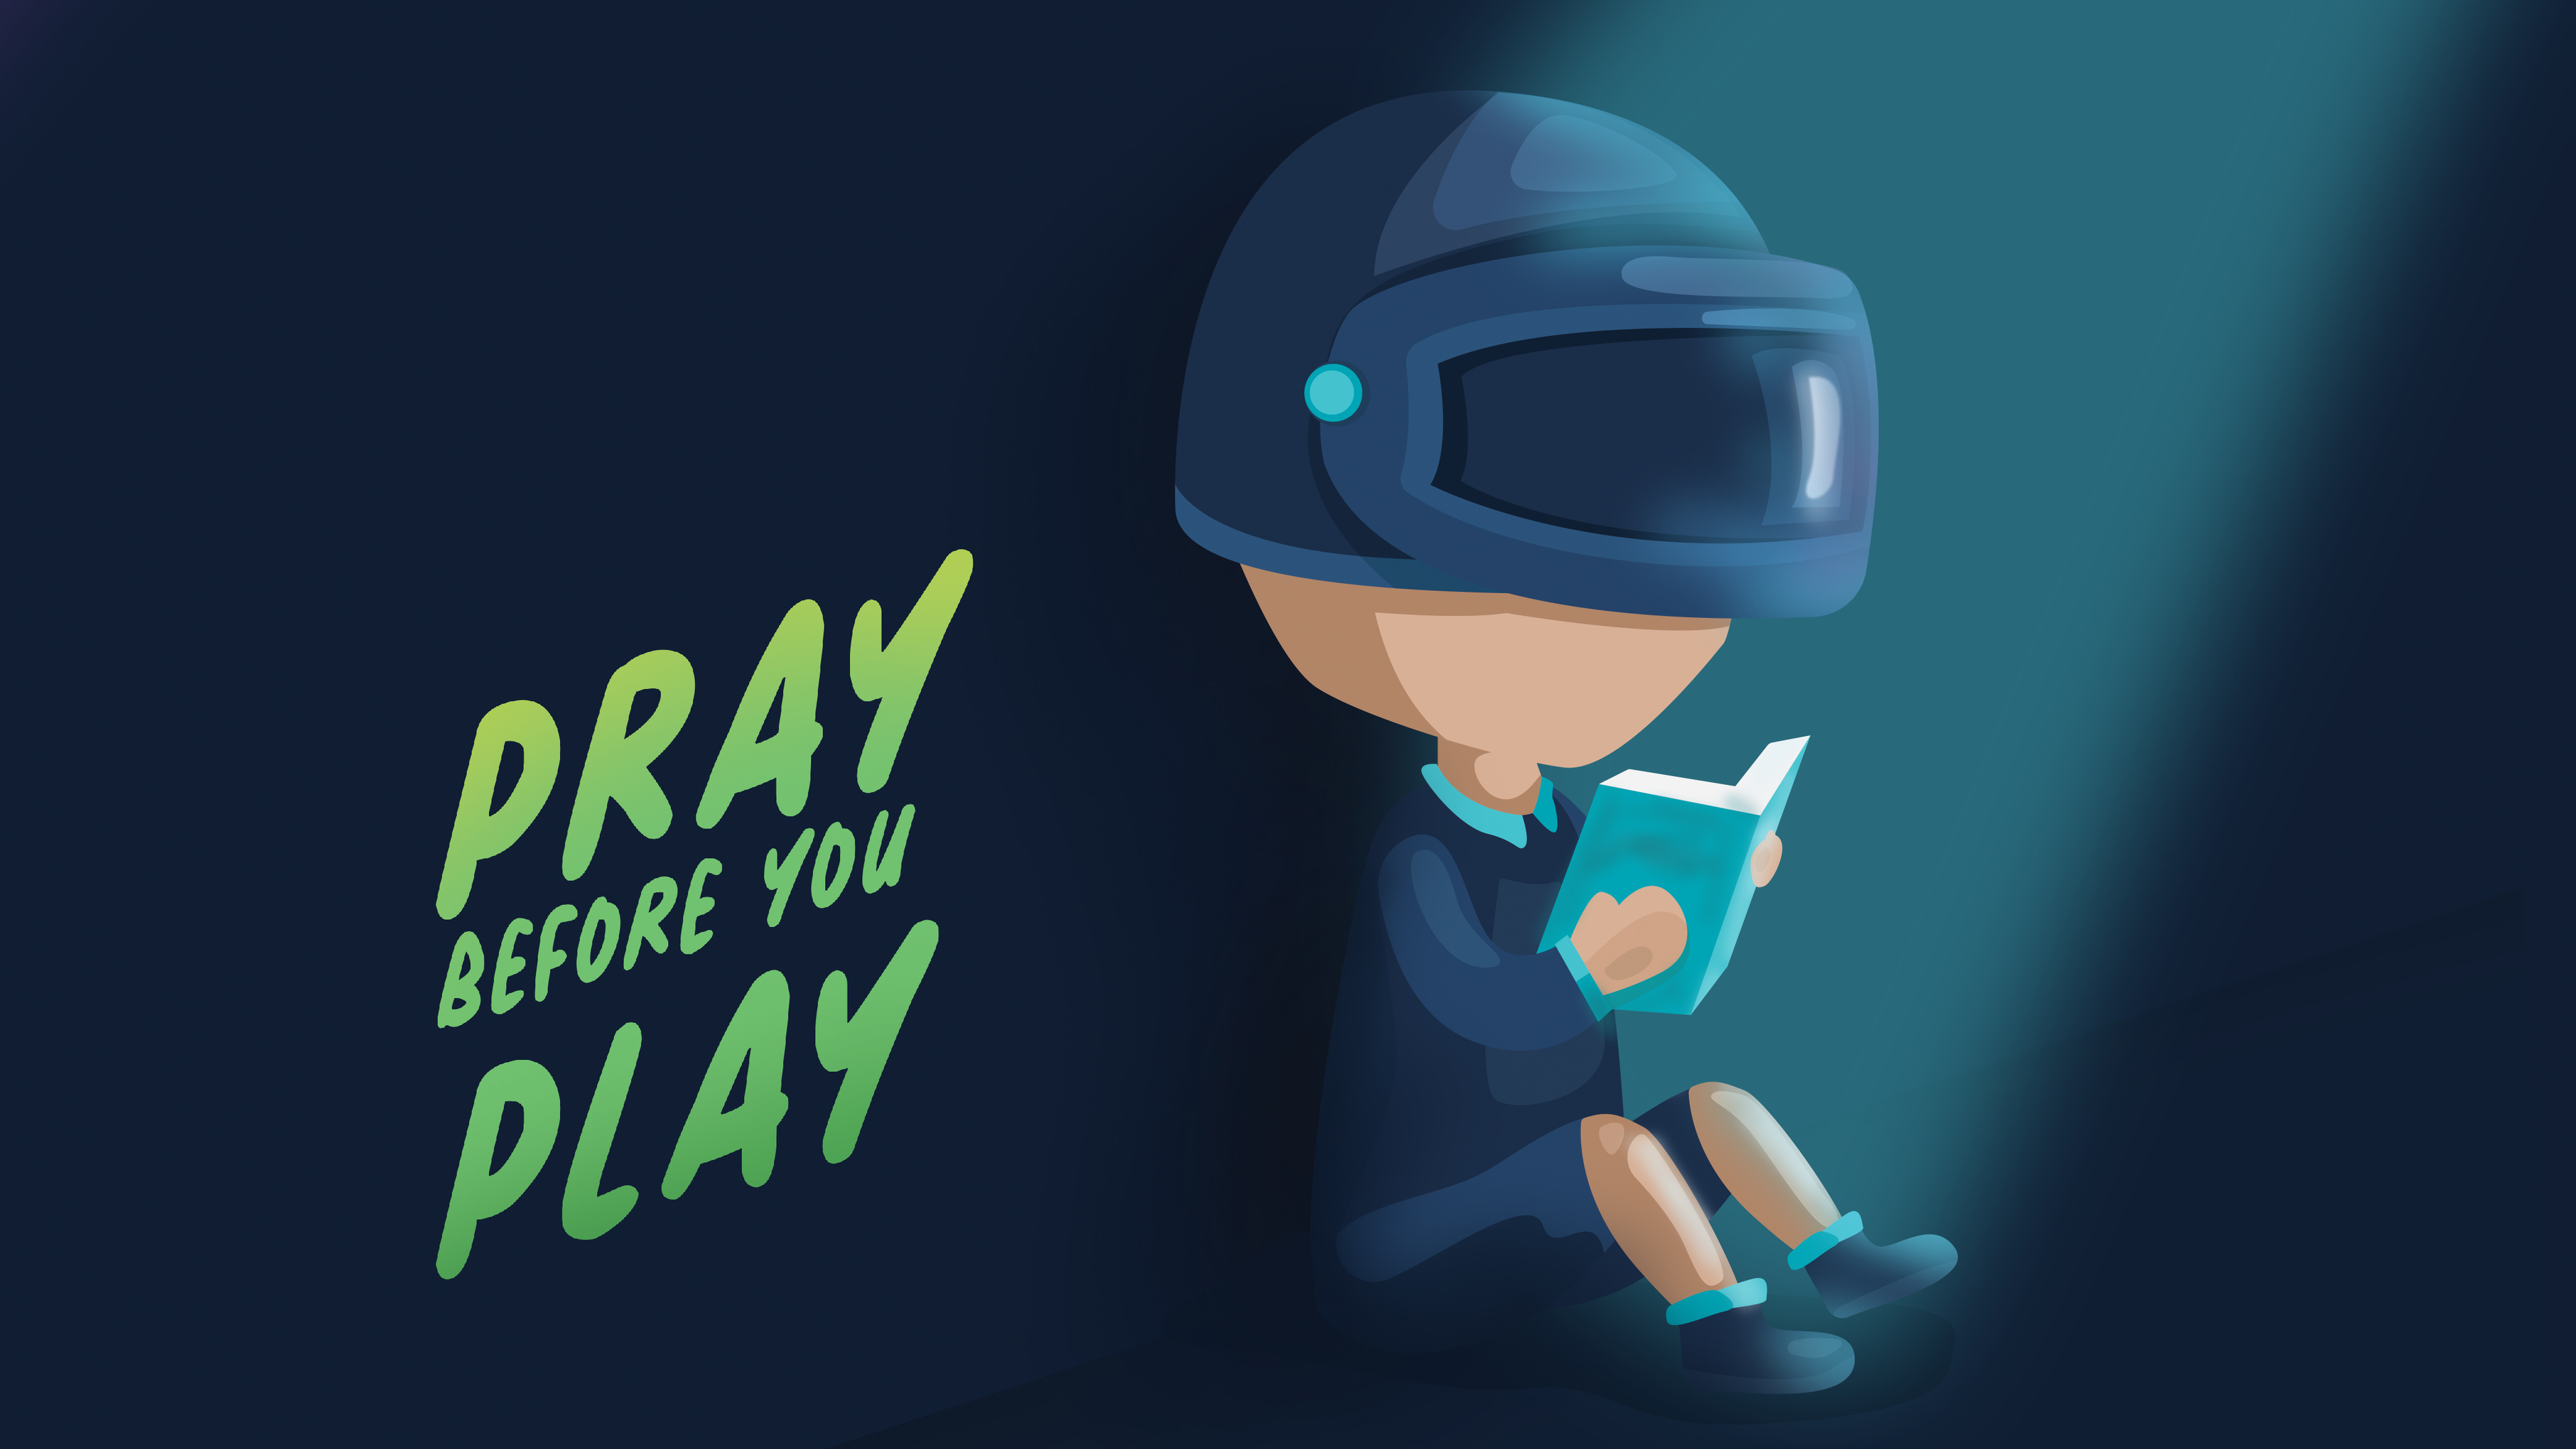 pubg pray before you play 1570392393 - Pubg Pray Before You Play - pubg wallpapers, playerunknowns battlegrounds wallpapers, hd-wallpapers, games wallpapers, 4k-wallpapers, 2019 games wallpapers